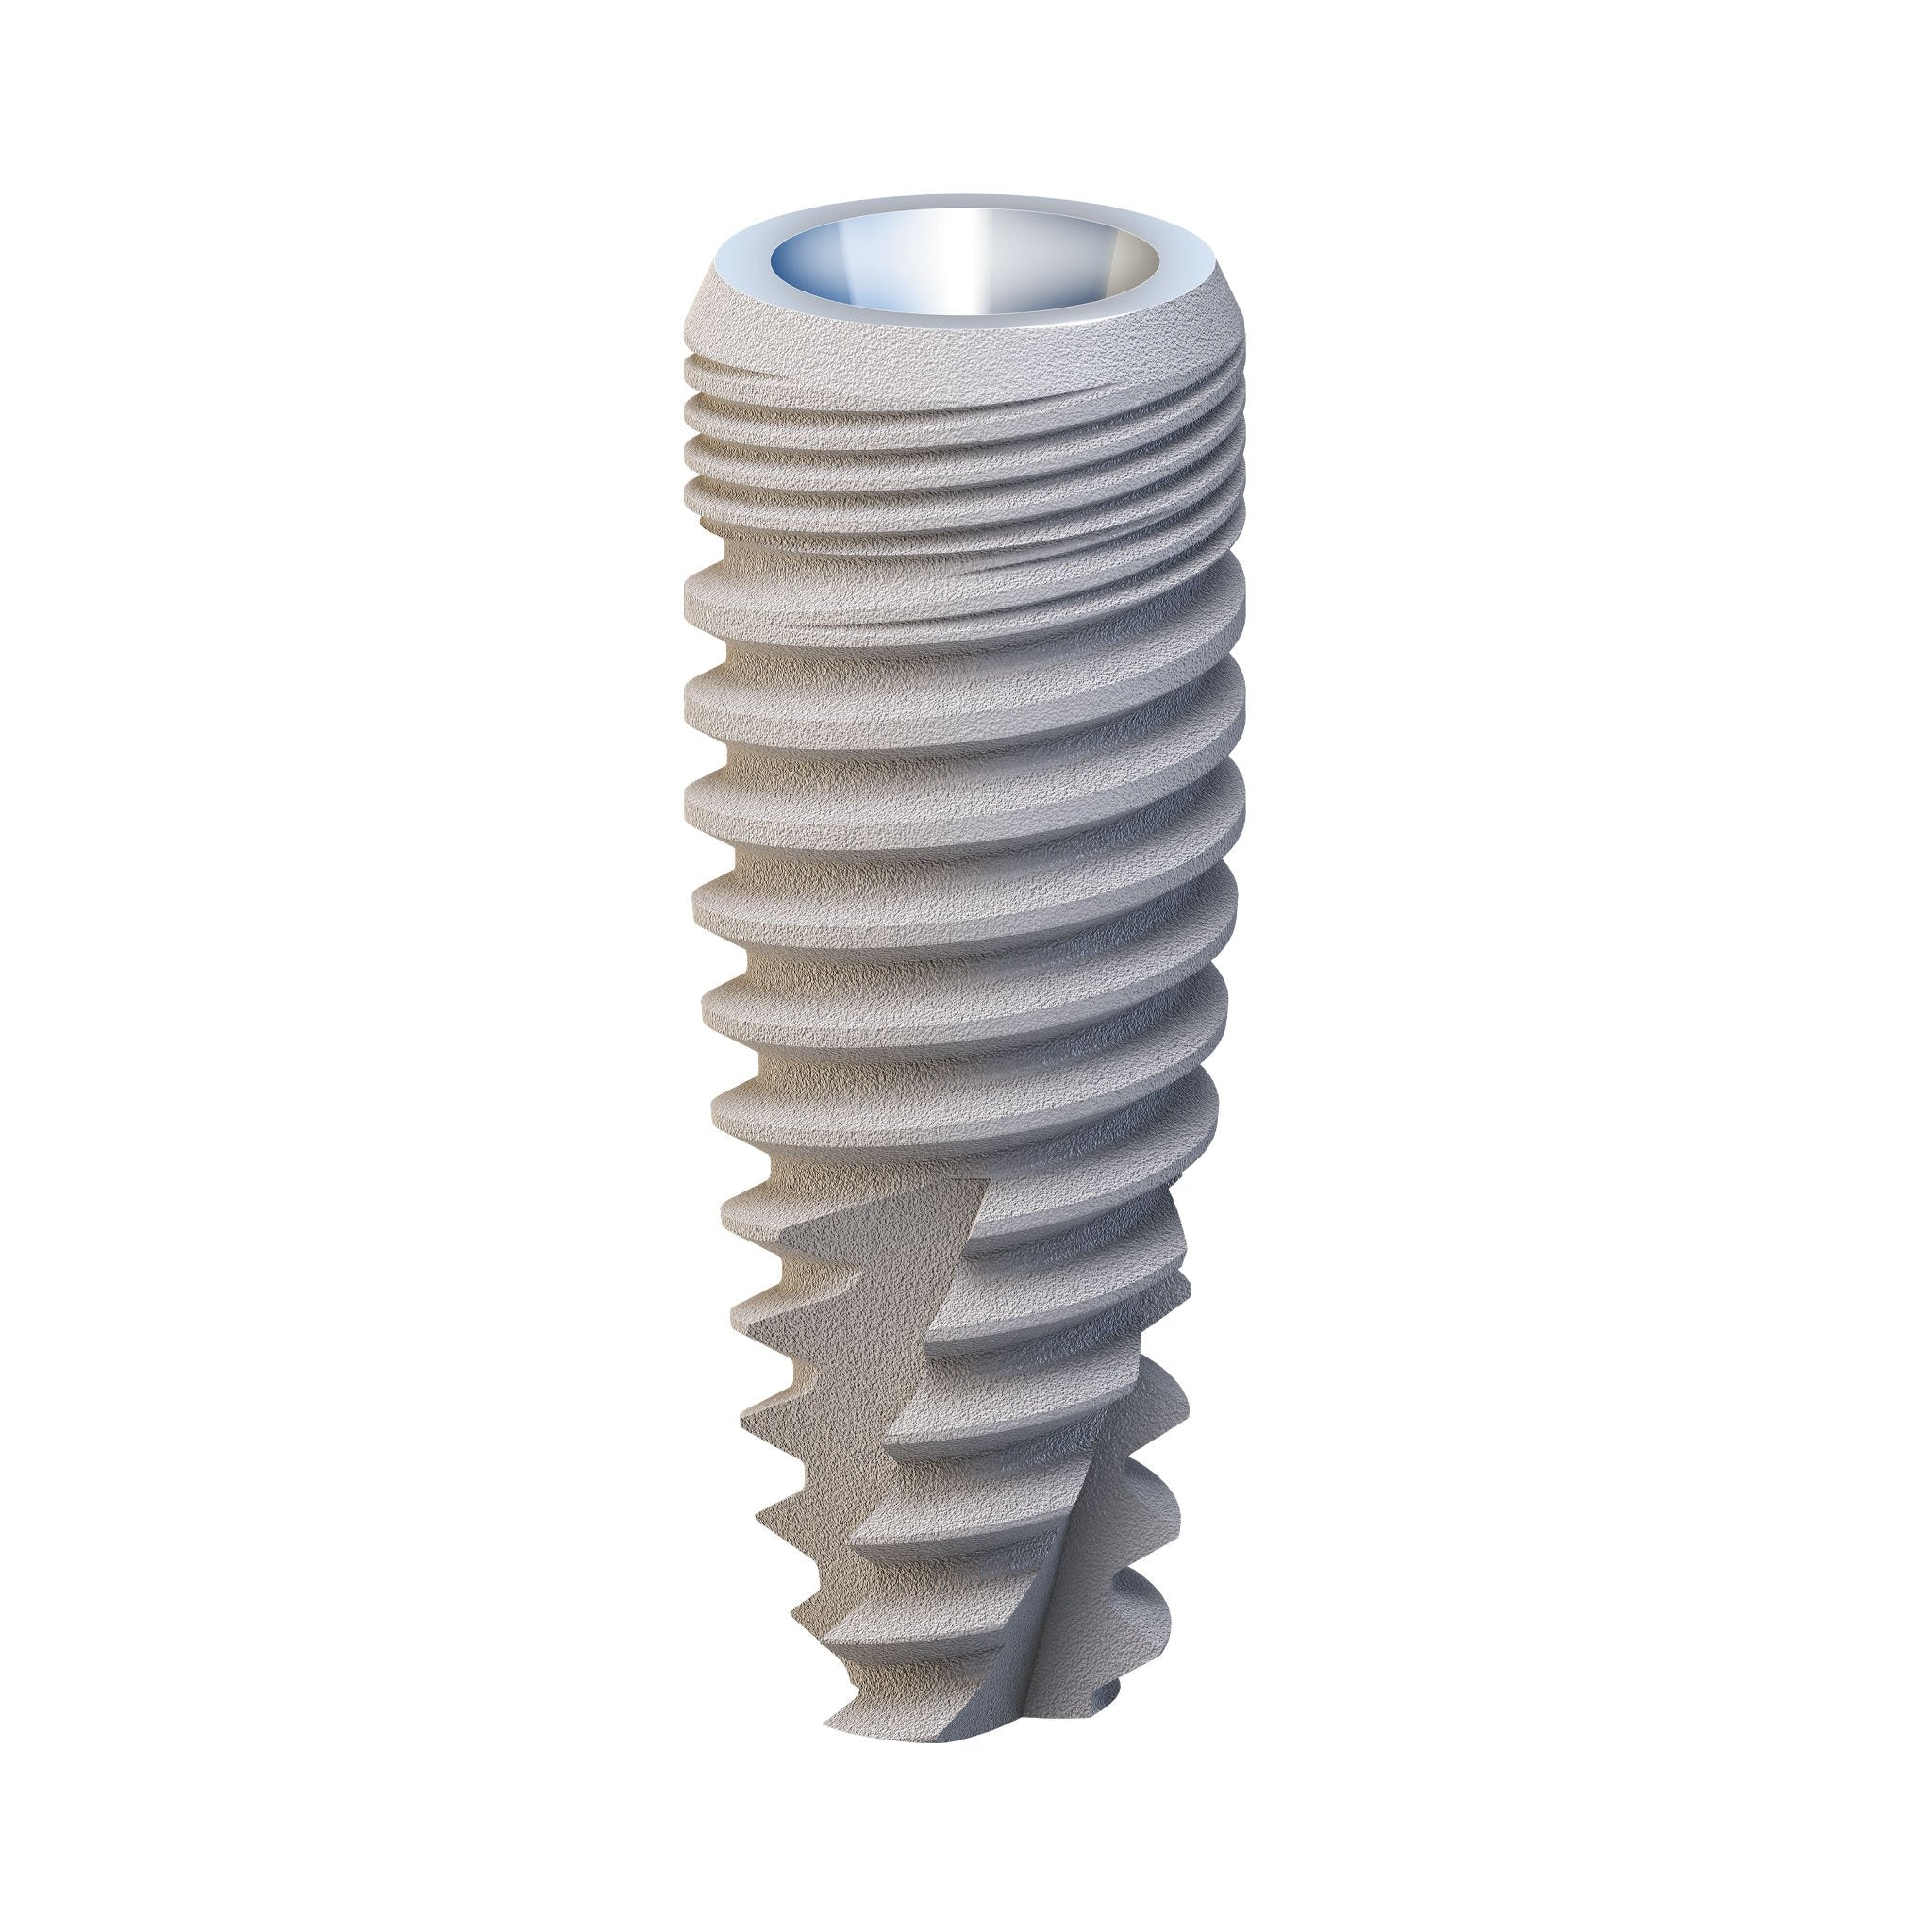 Conical Active Implant Ø 3.25 x 11.5mm | K3